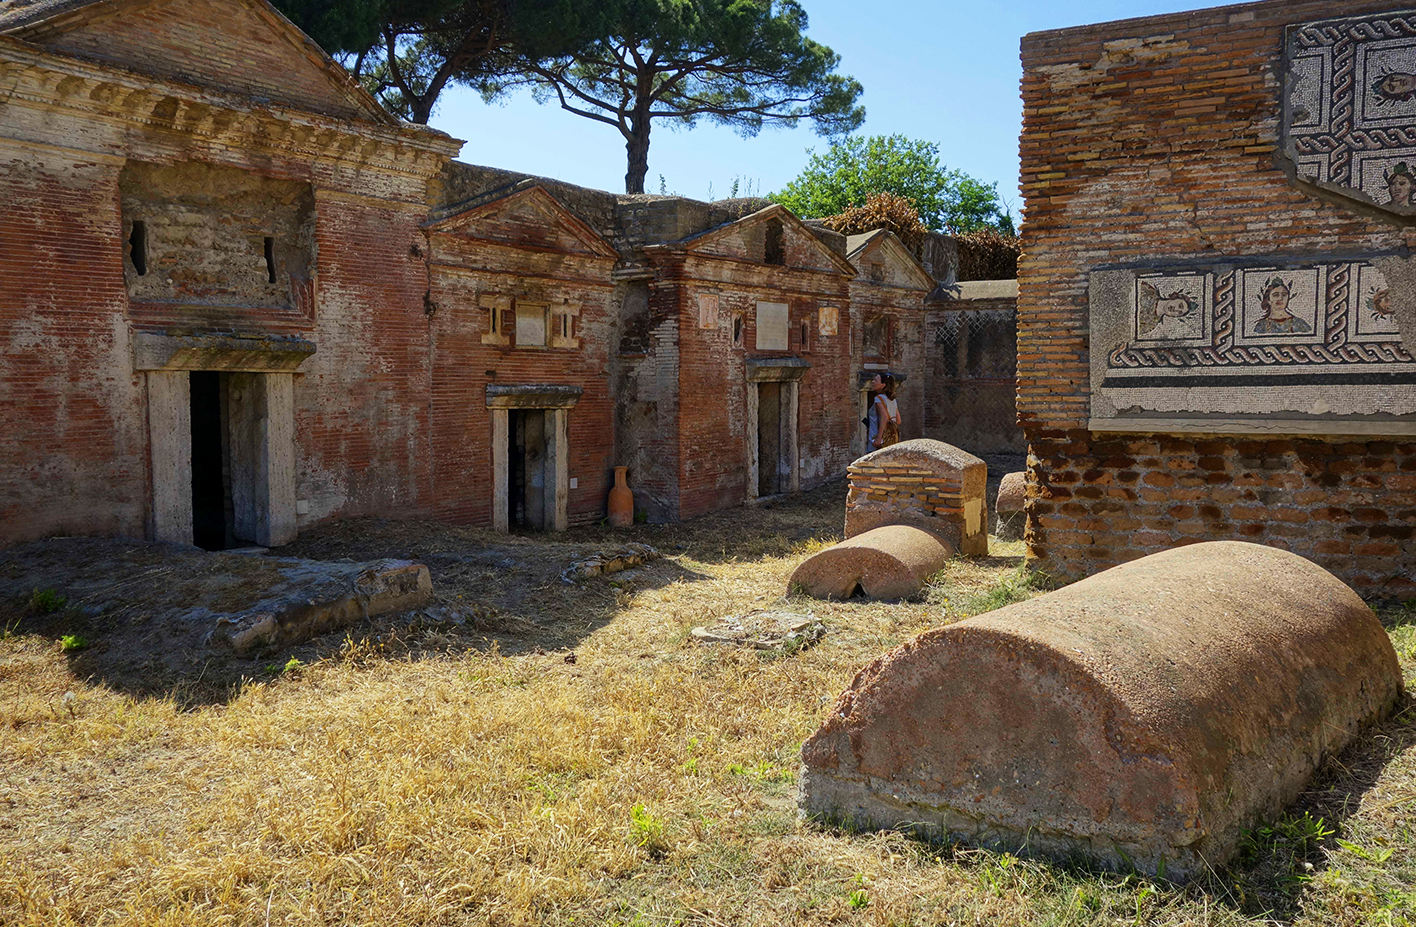 An open space among some decorated sepulchres in the Necropolis of Portus